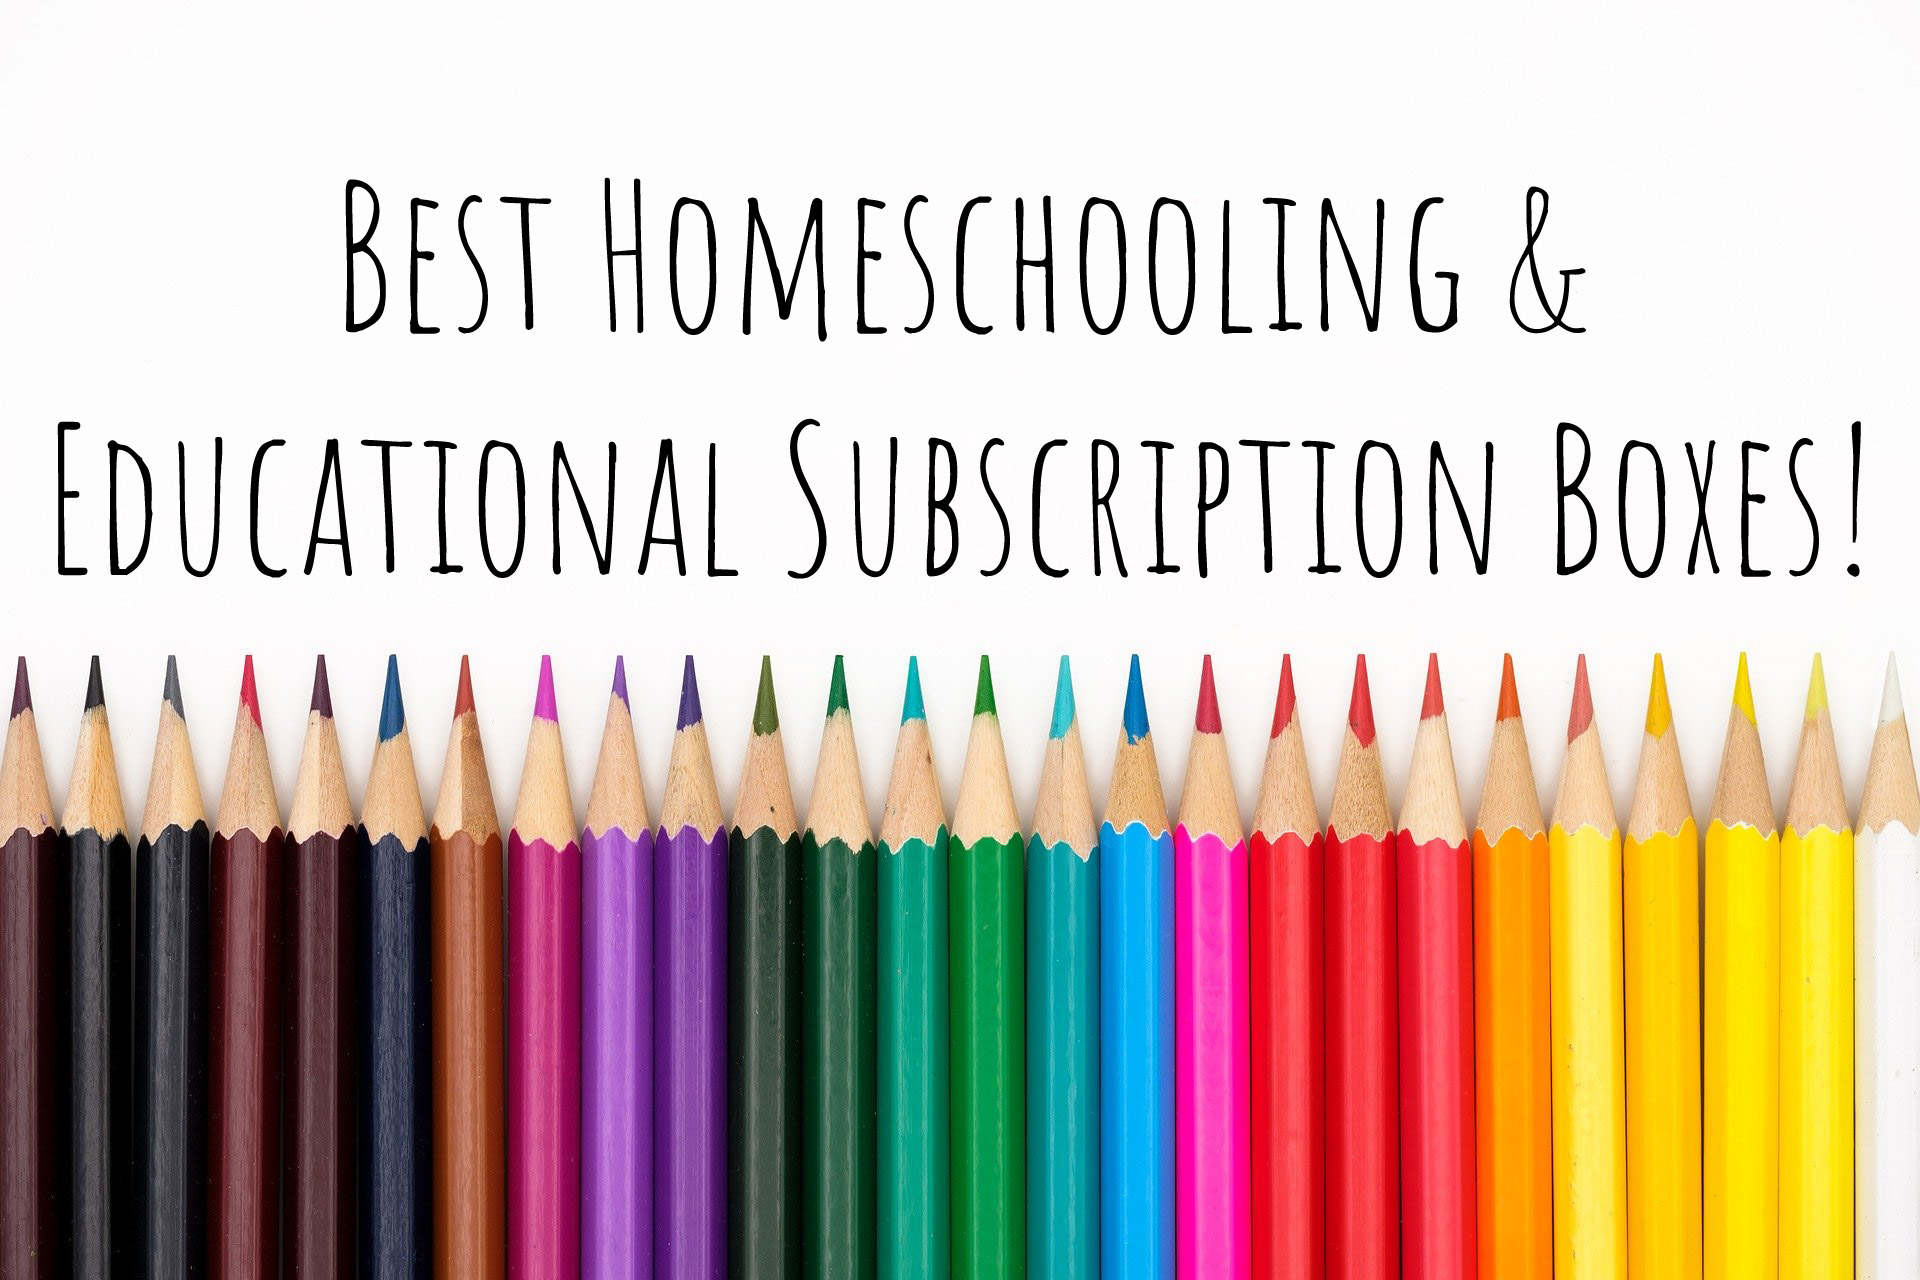 THE BEST HOMESCHOOLING AND EDUCATIONAL SUBSCRIPTION BOXES!